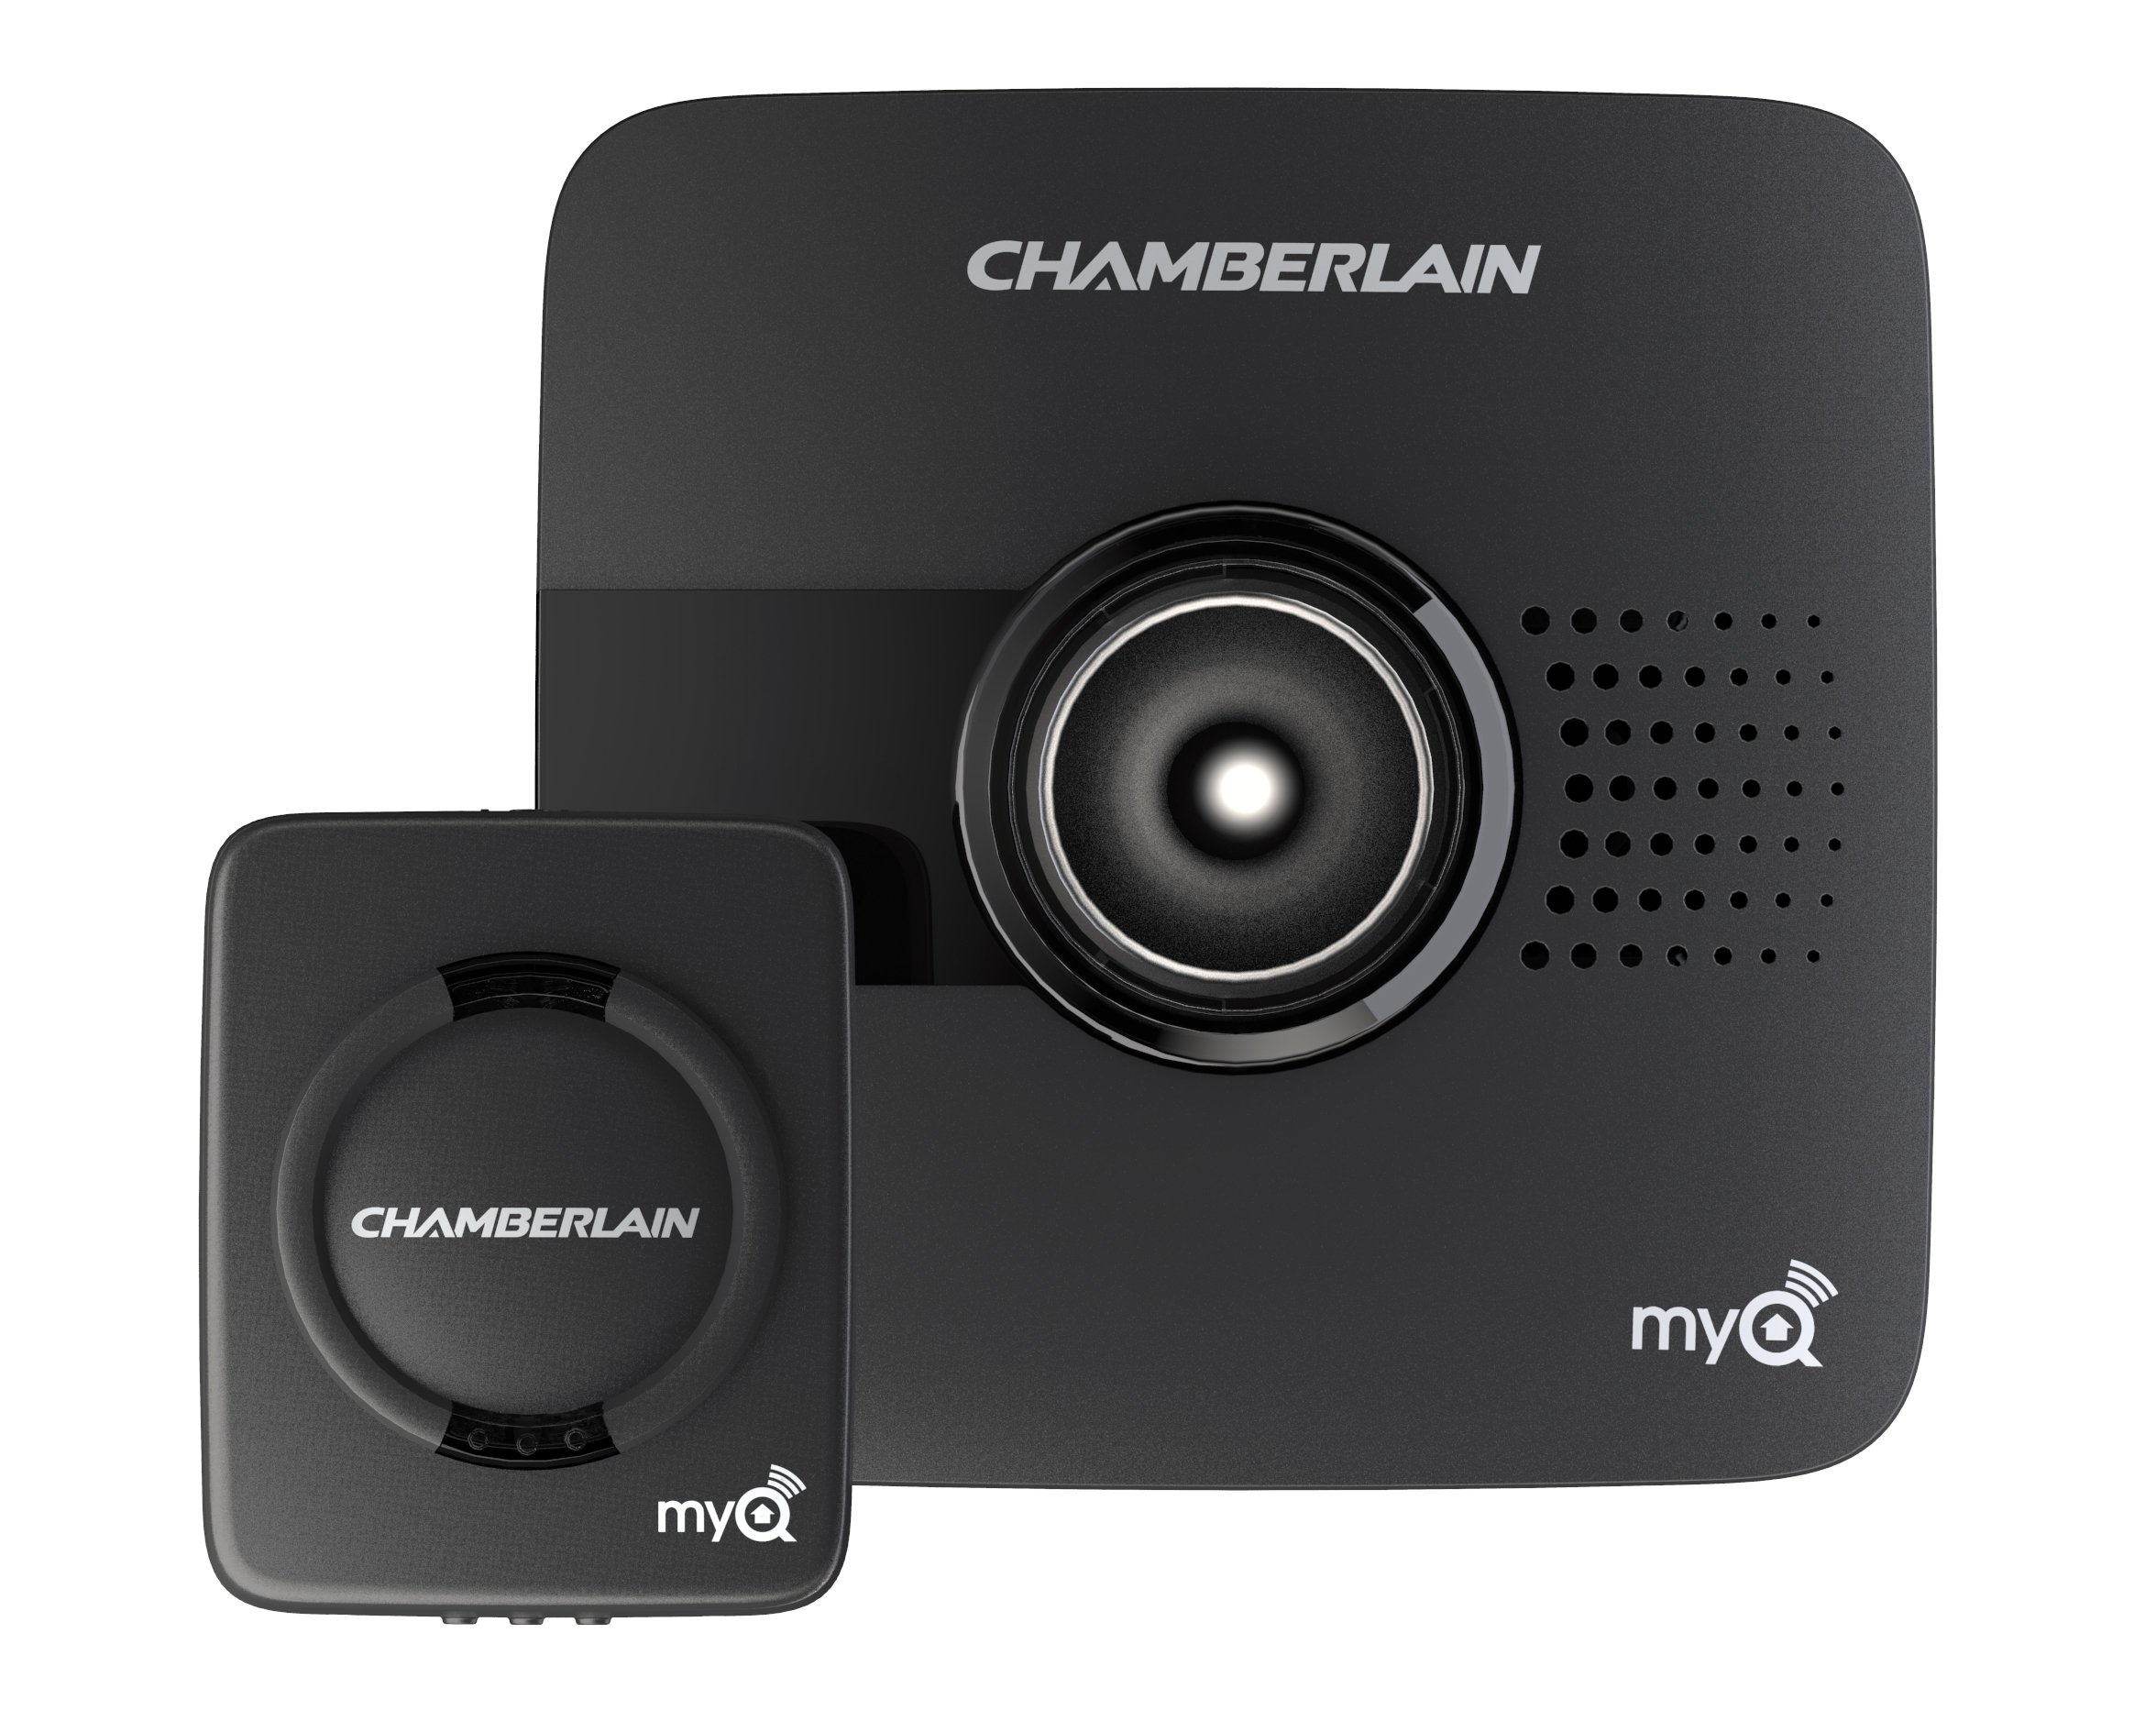 clarehome door clare liftmaster garage controls dealer news topic myq chamberlain opener release